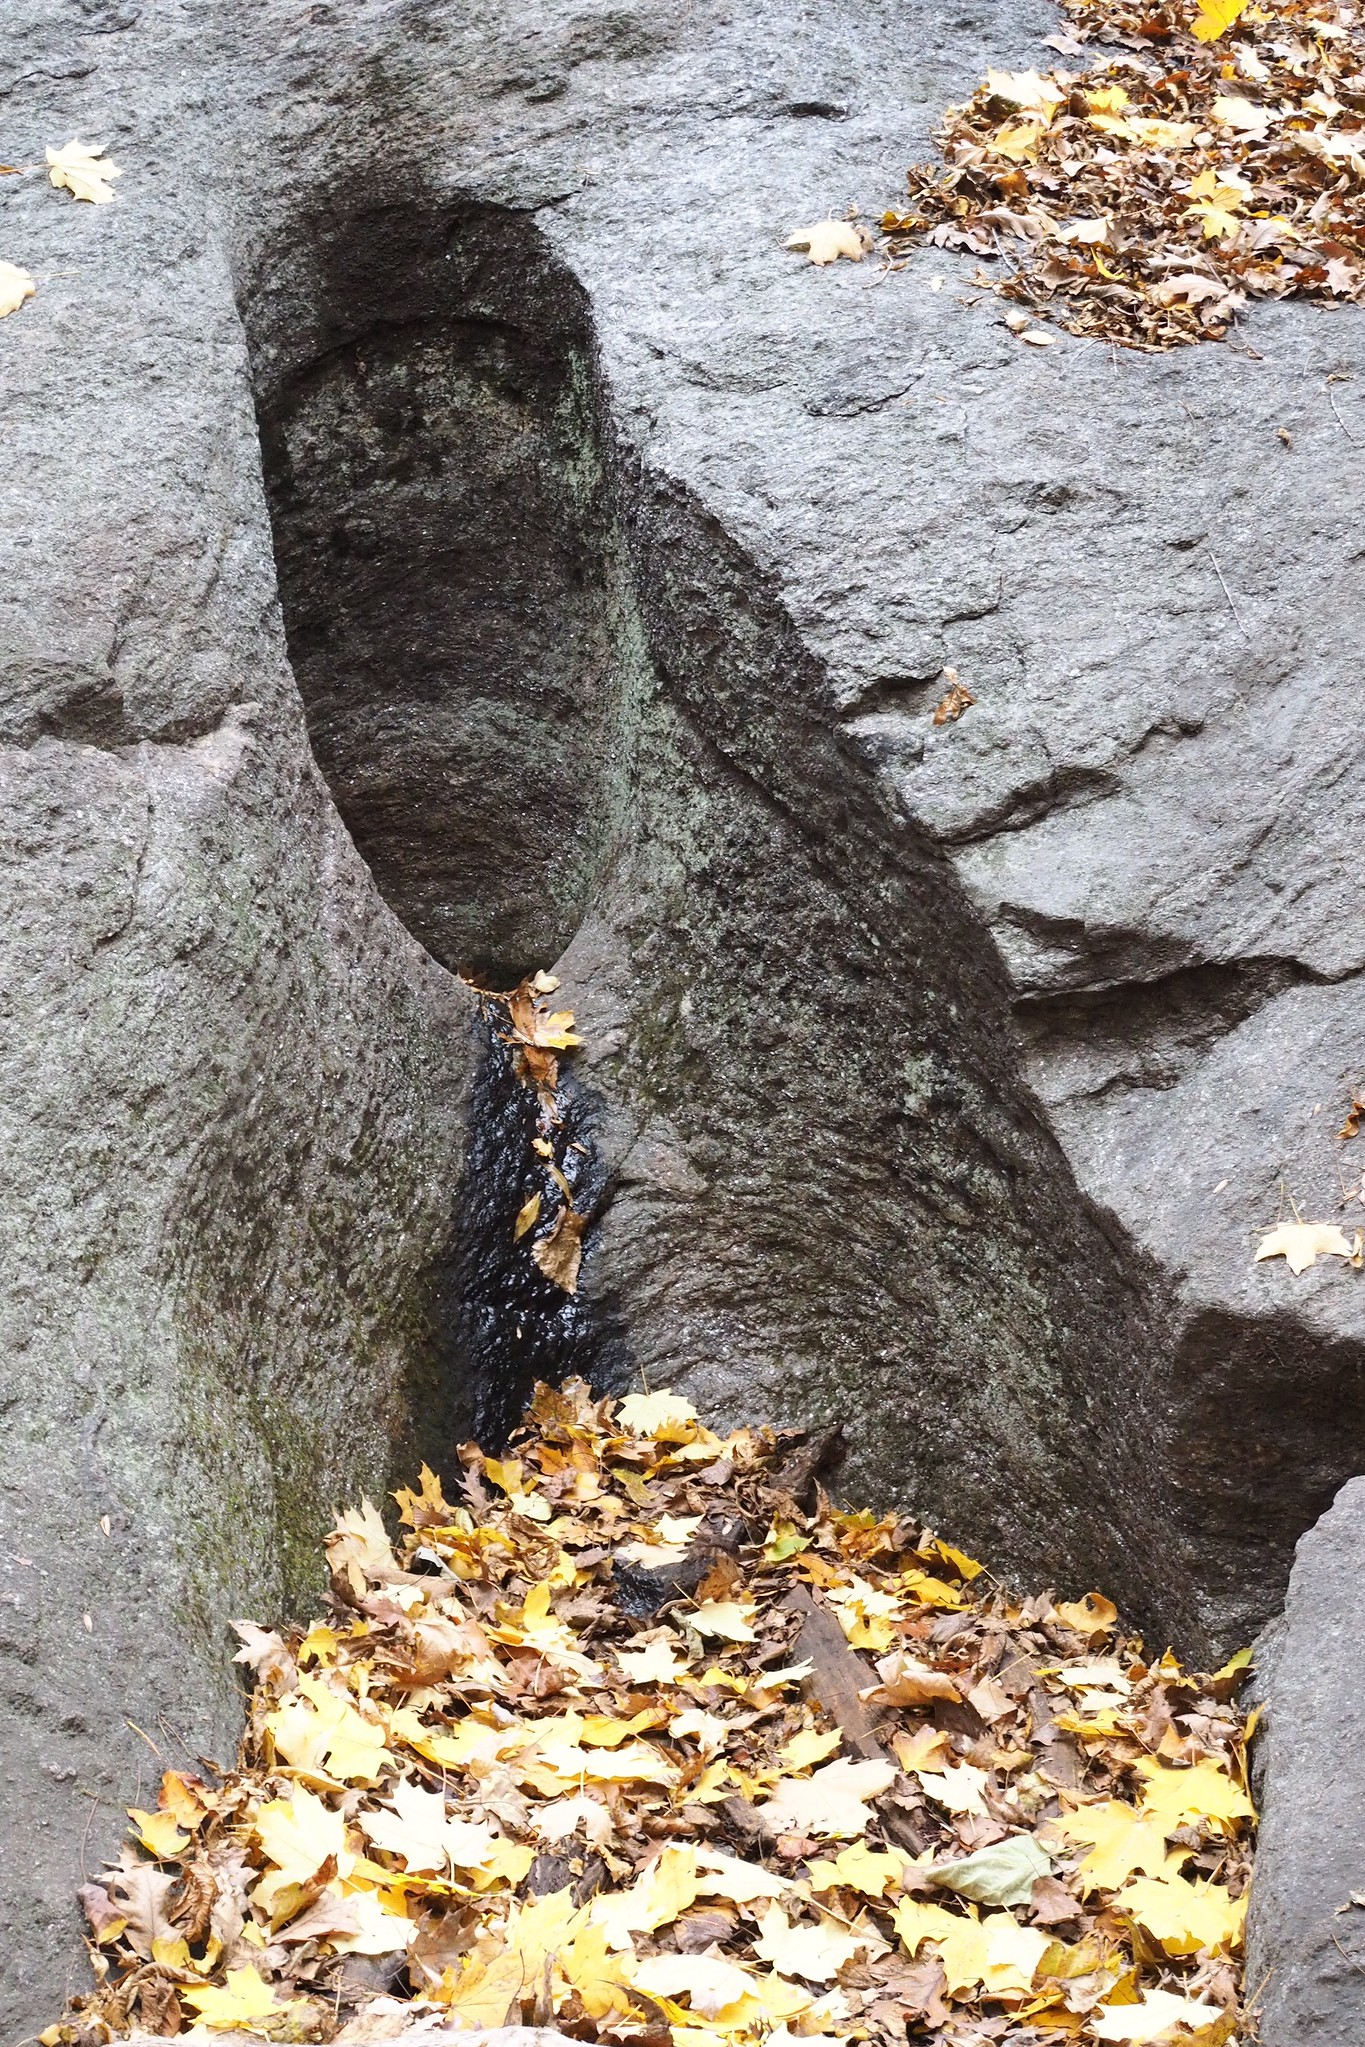 One of the Glacial Potholes at Inwood Hill Park